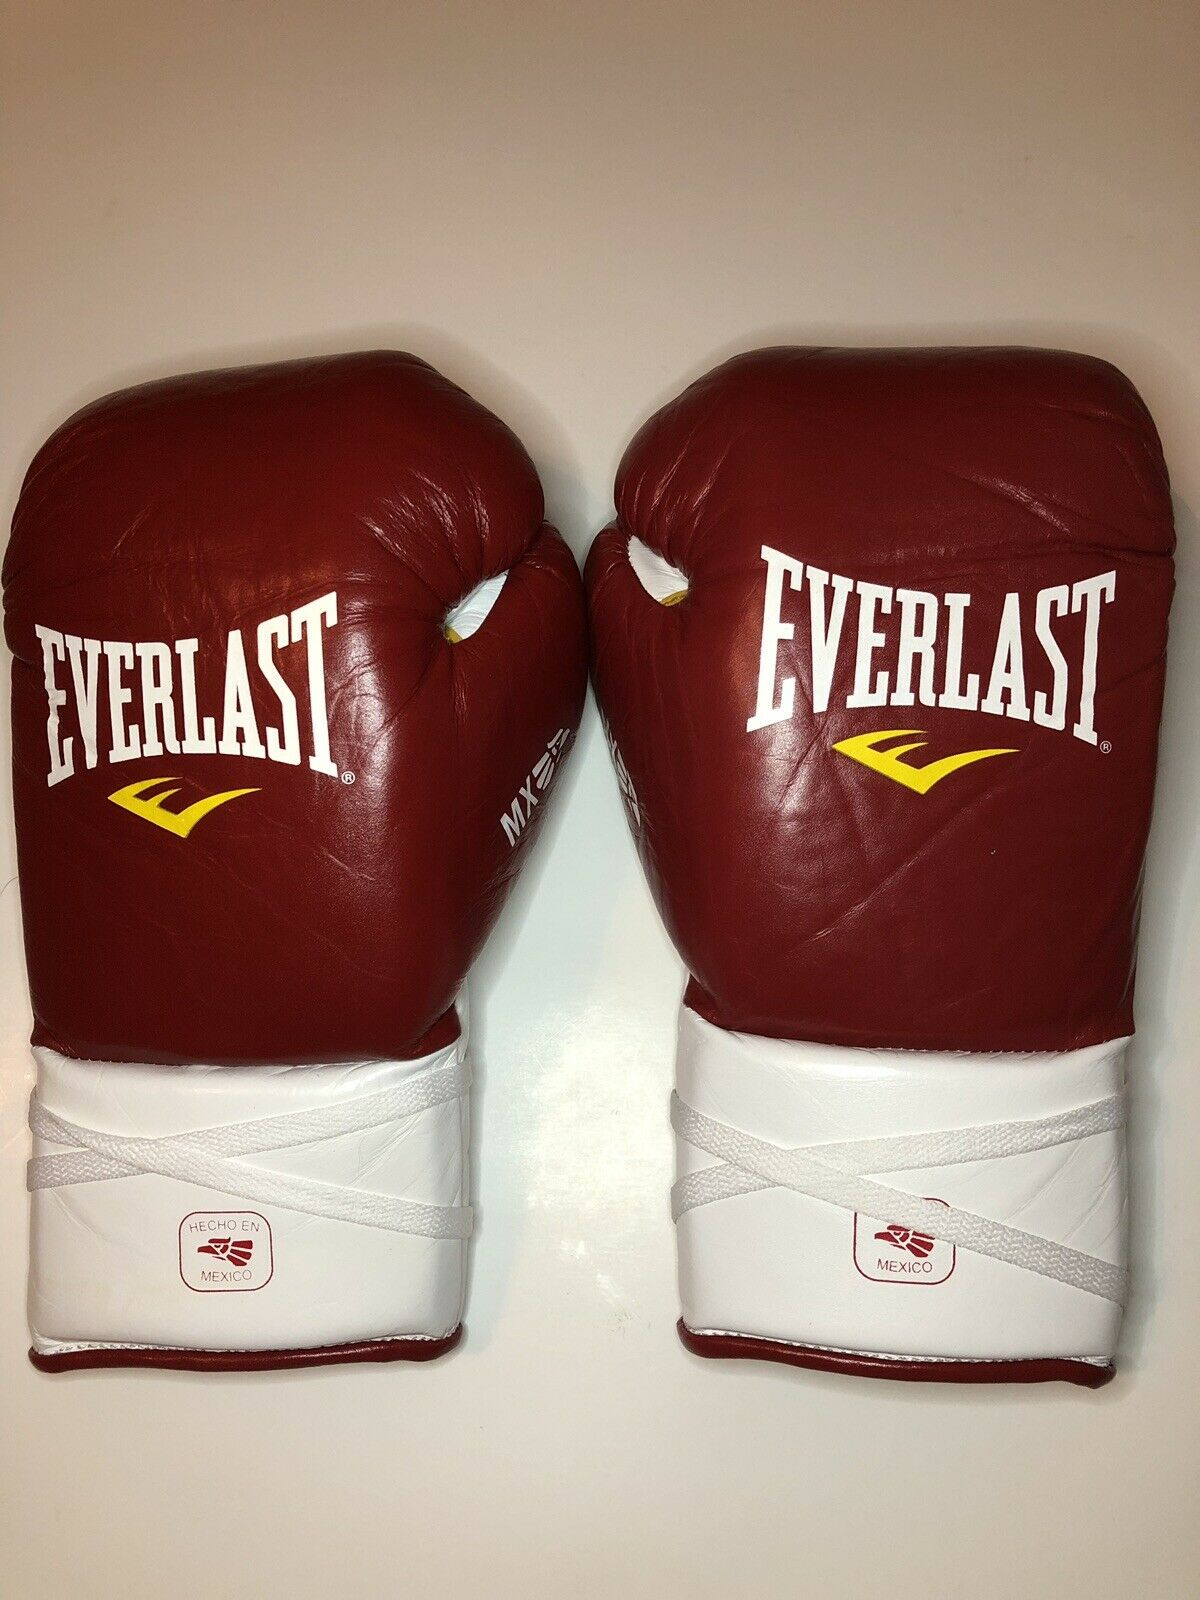 Boxing Gloves Everlast 10OZ Leather Mexico MX Laced Fight Gloves Red